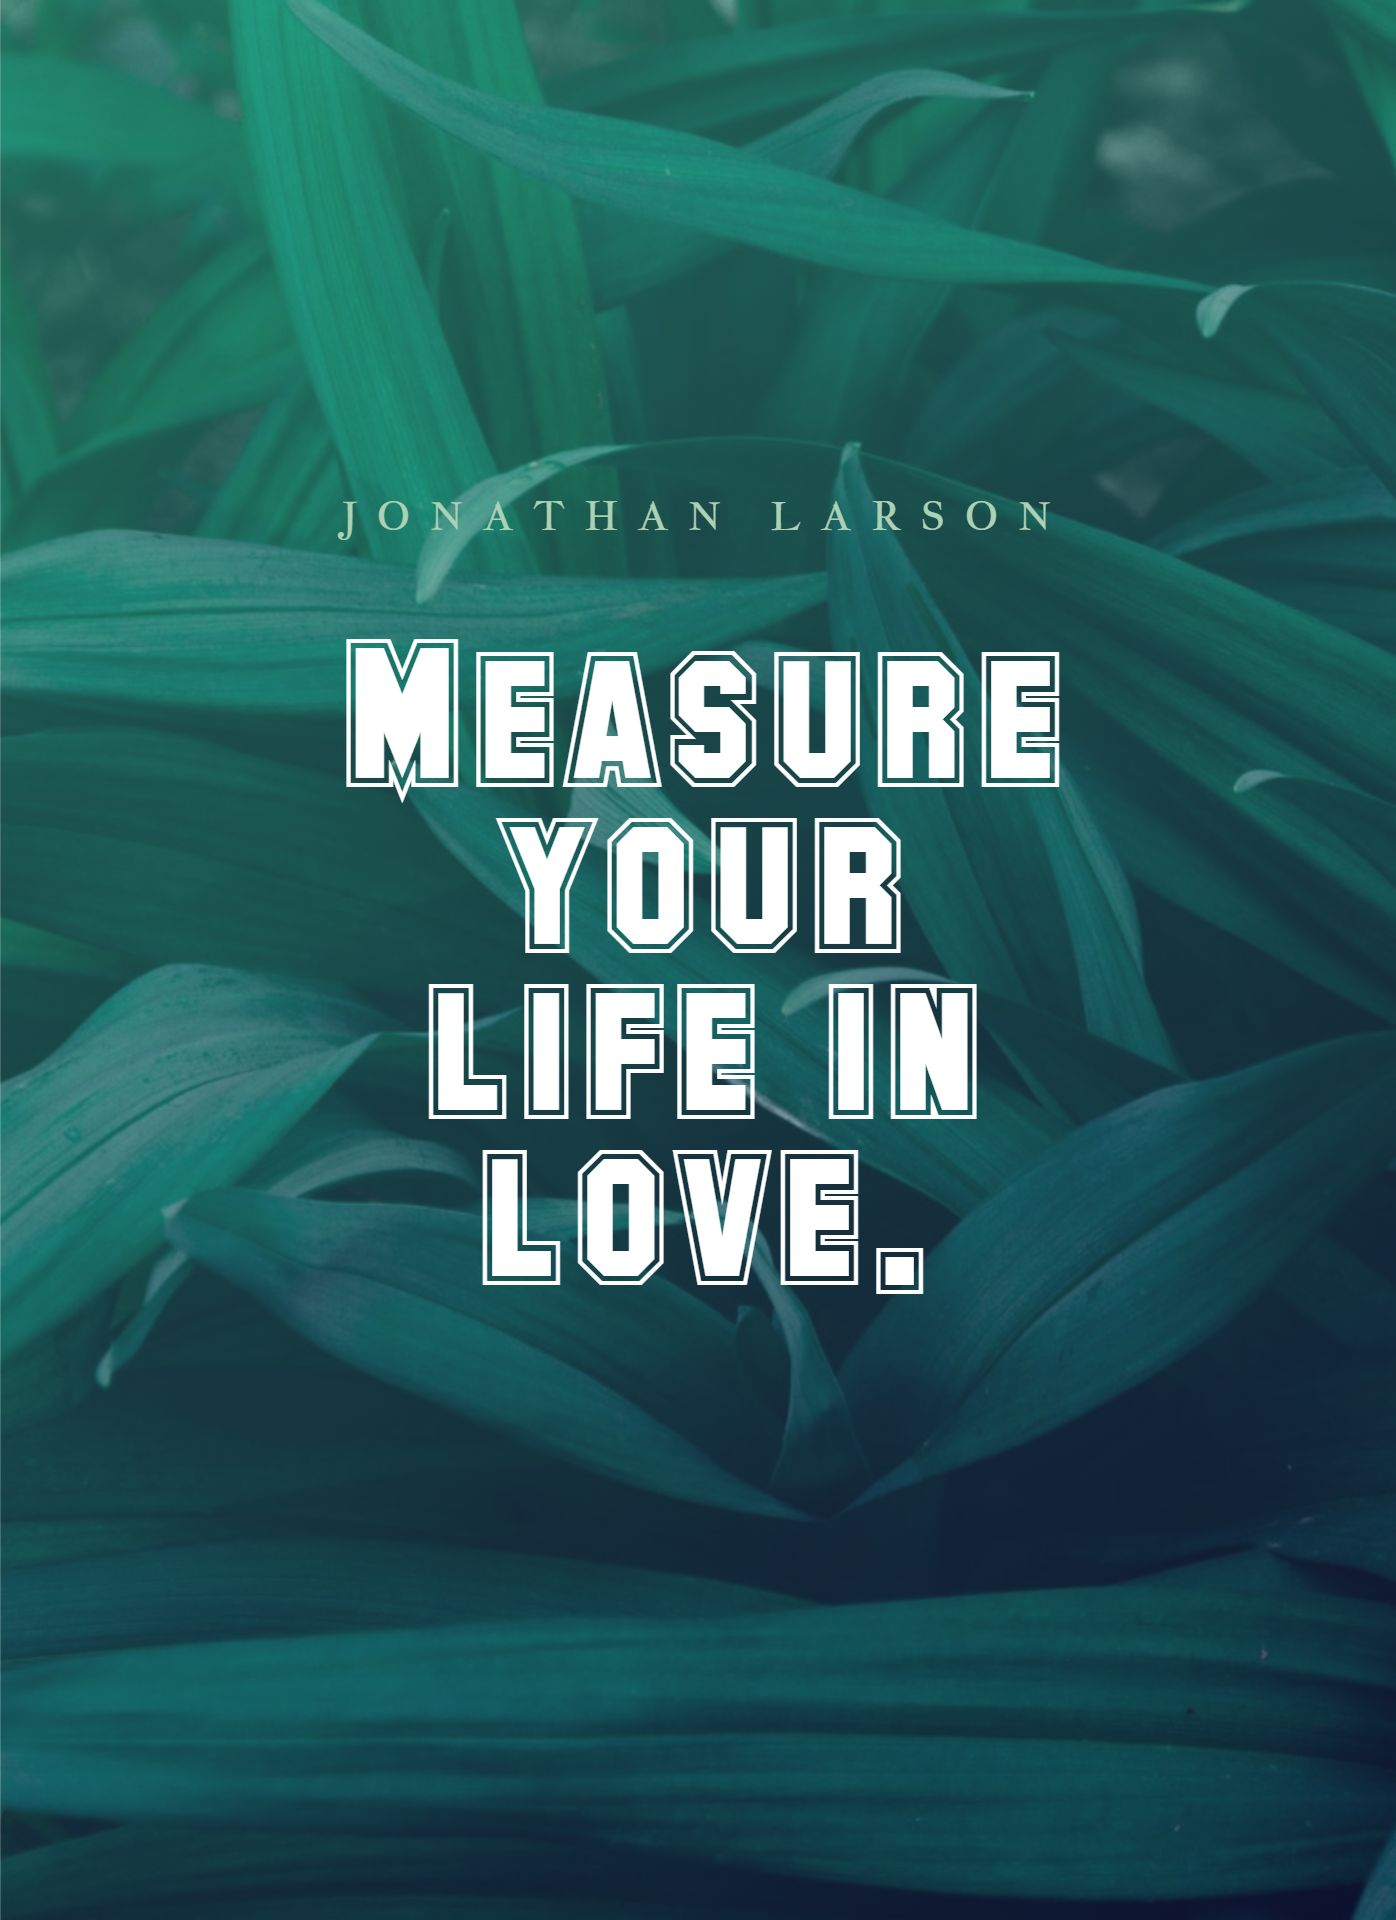 Quotes image of Measure your life in love.